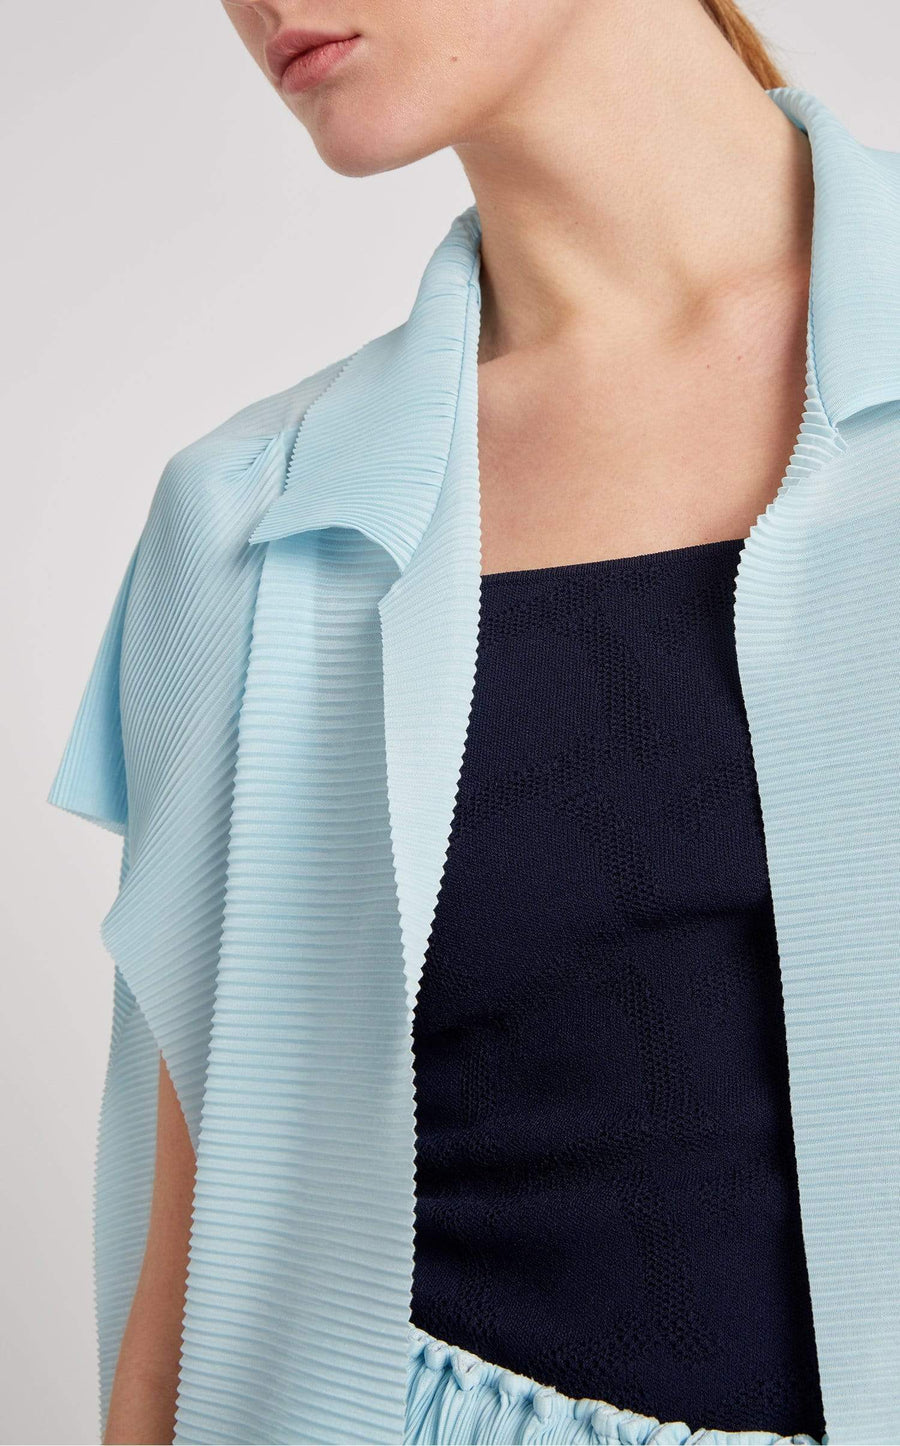 Lescaut Top In Ice Blue from Roland Mouret